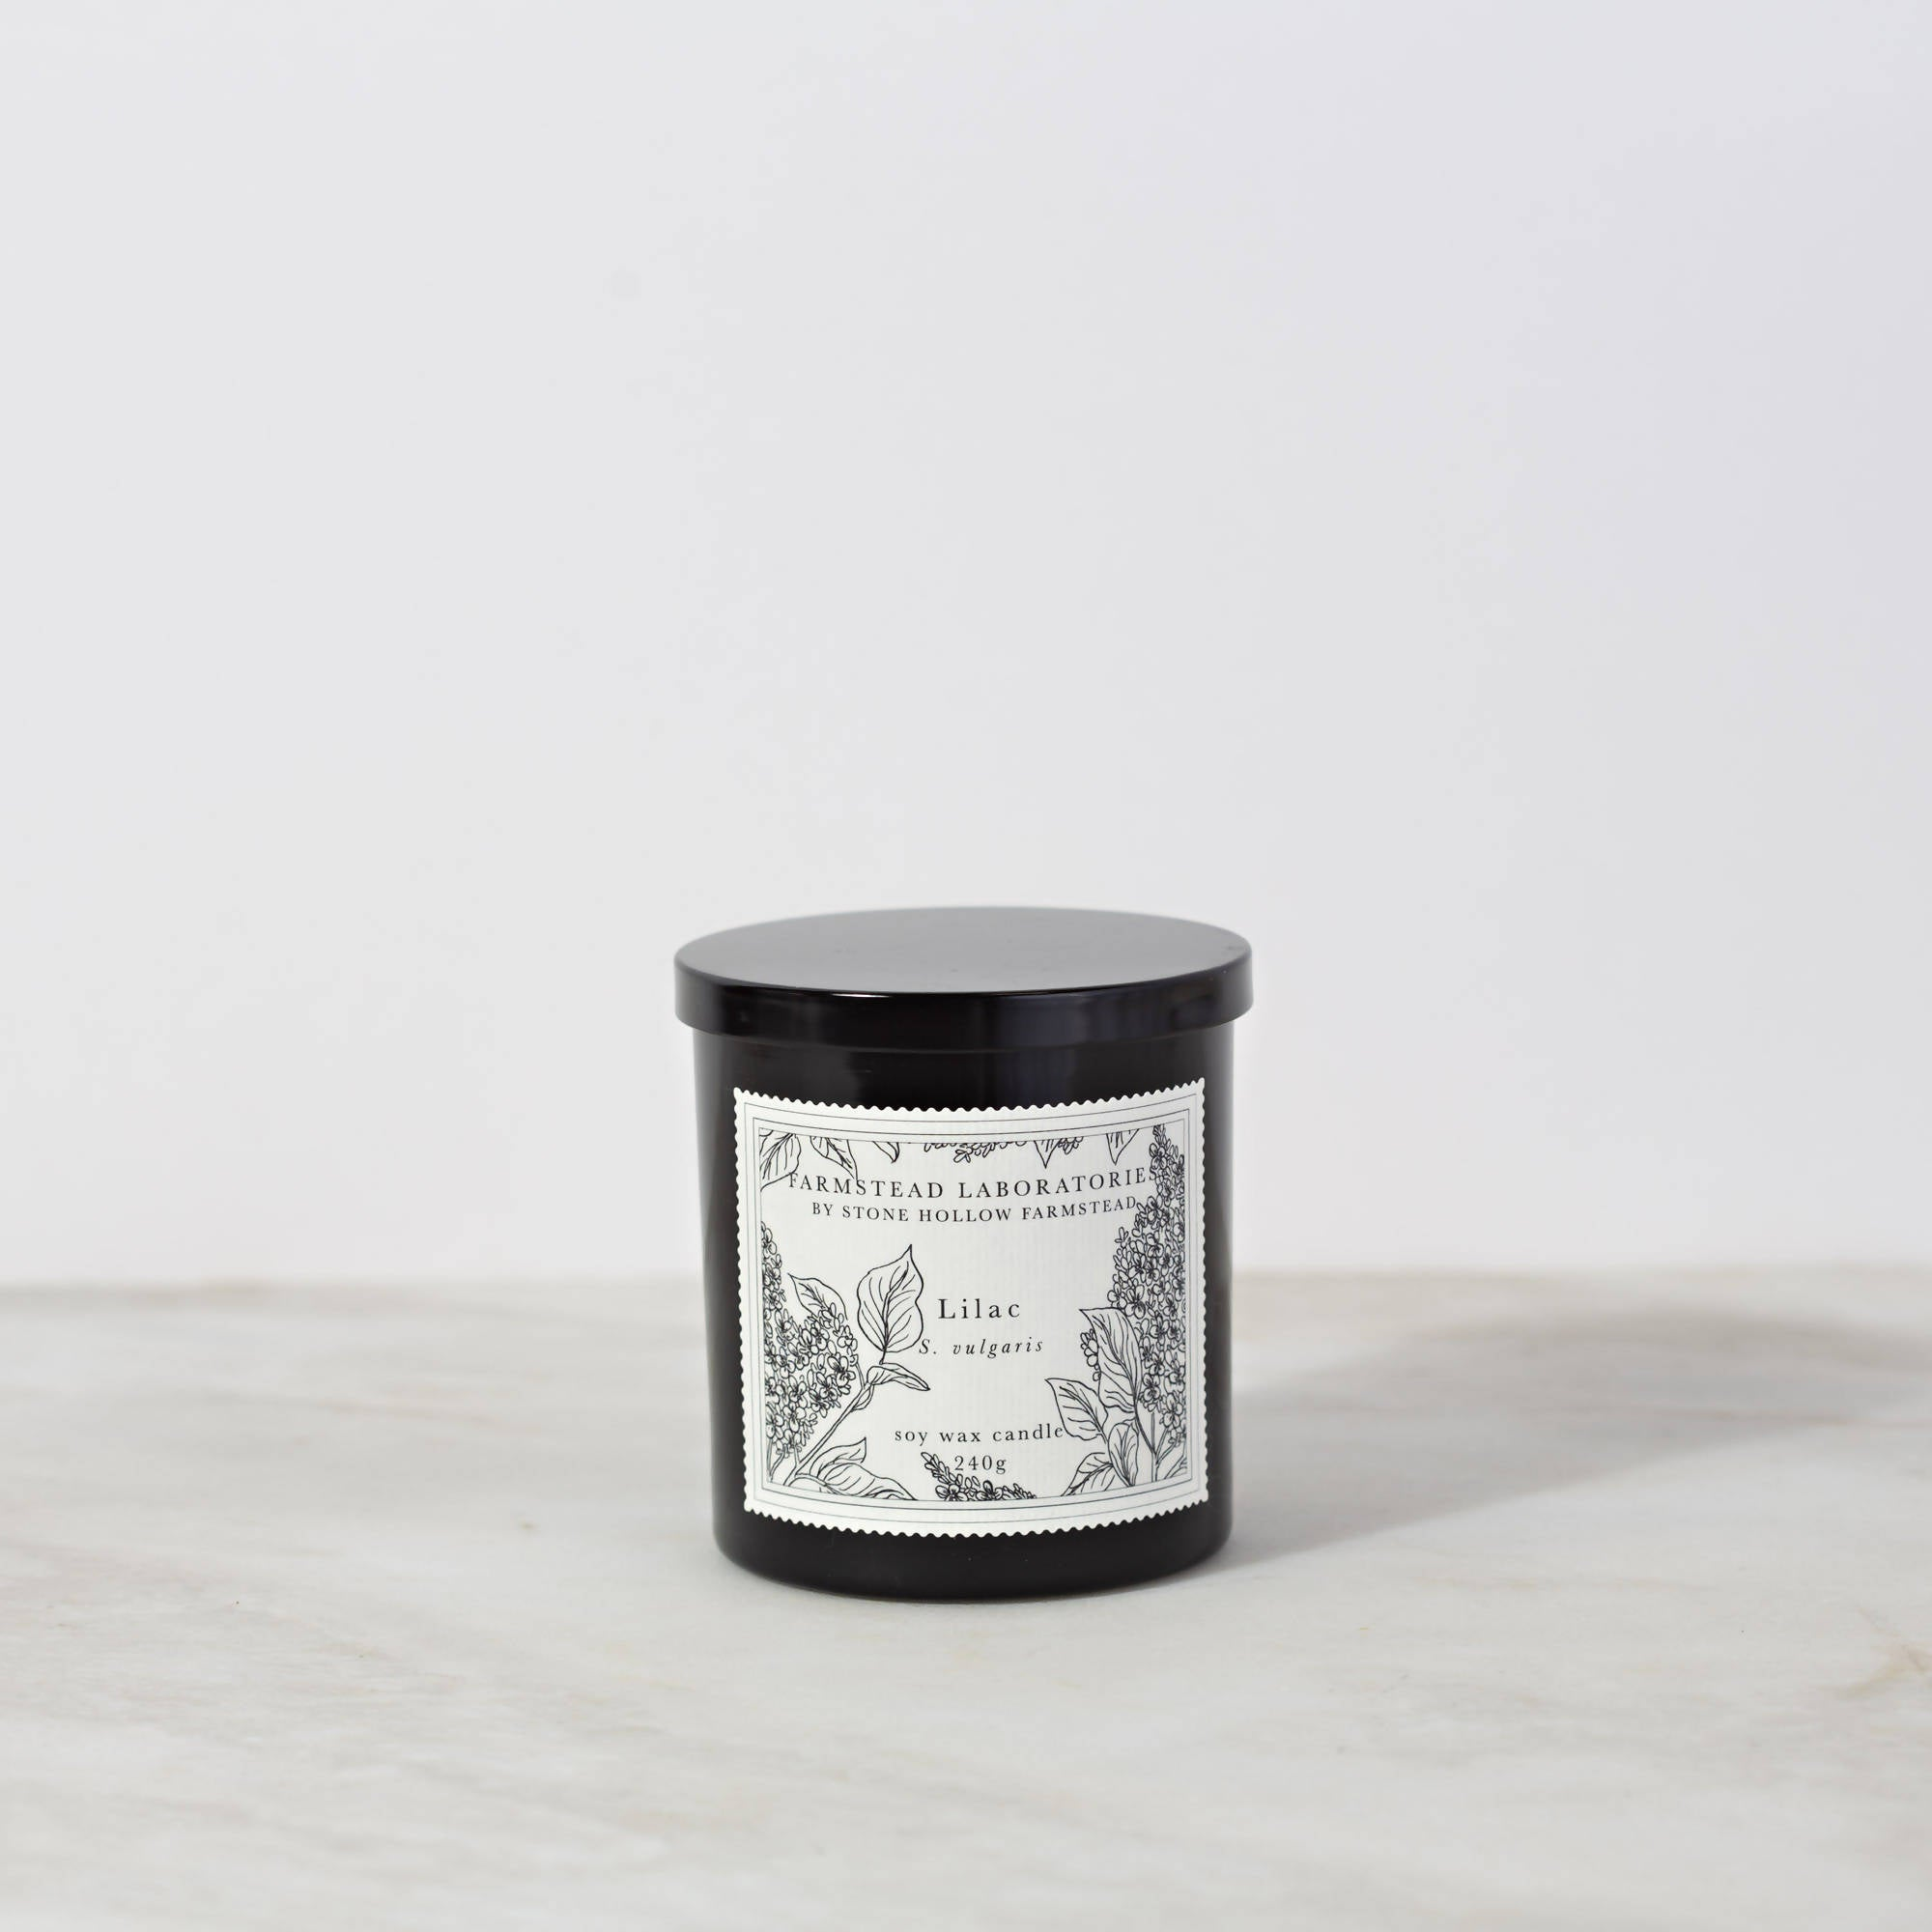 BOTANICAL SOY WAX CANDLE / LILAC